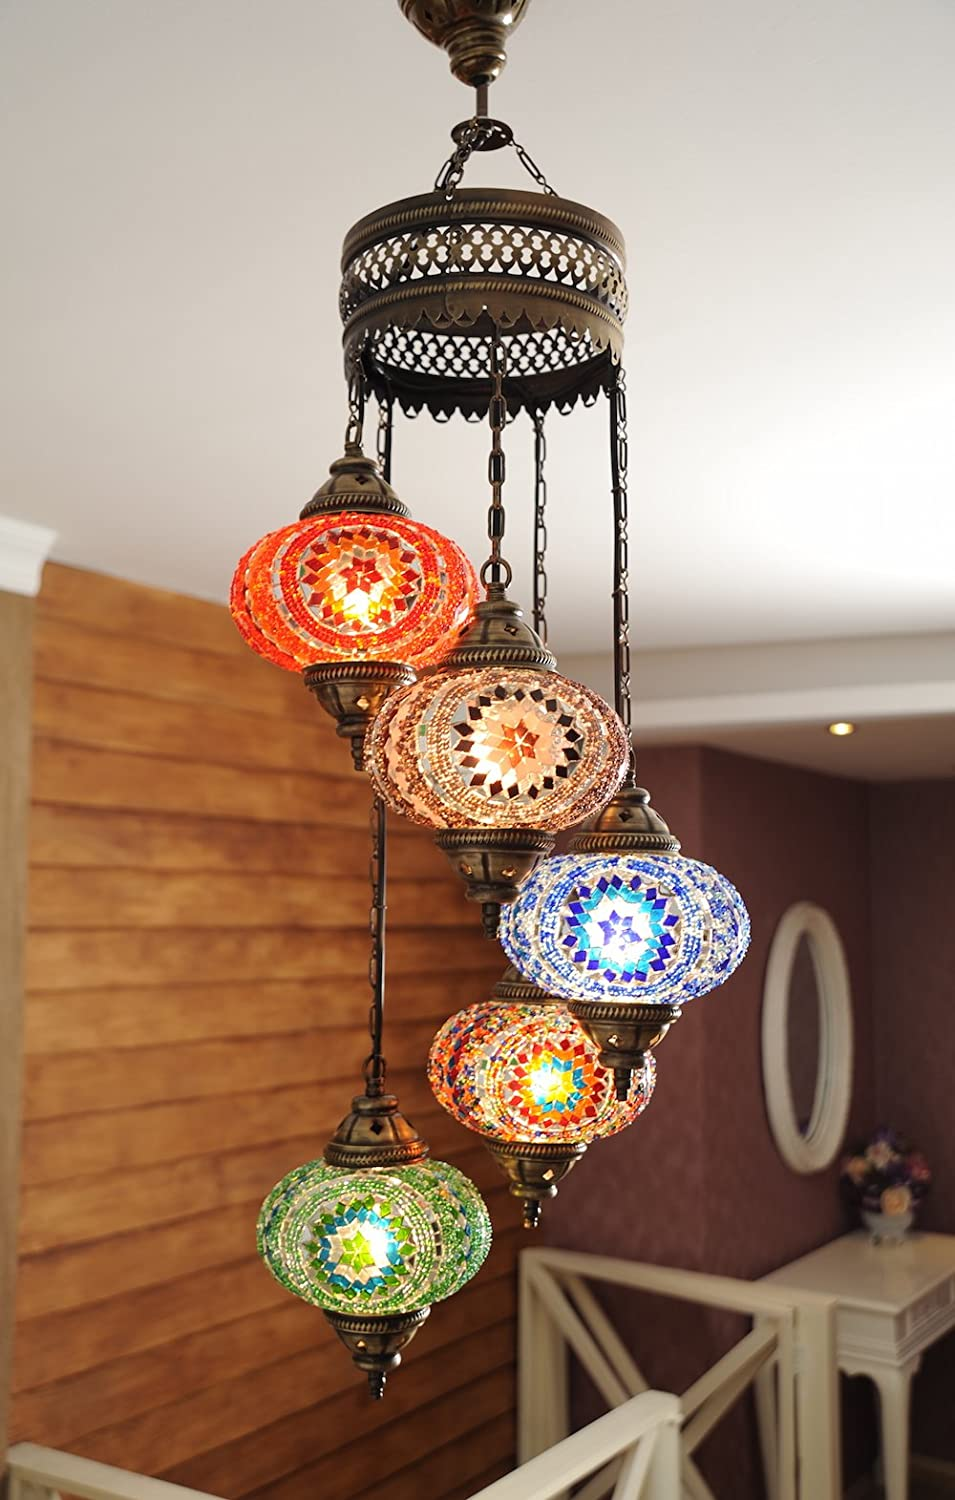 Choose from 12 designs turkish moroccan mosaic glass chandelier lights hanging ceiling lamps xlarge 2